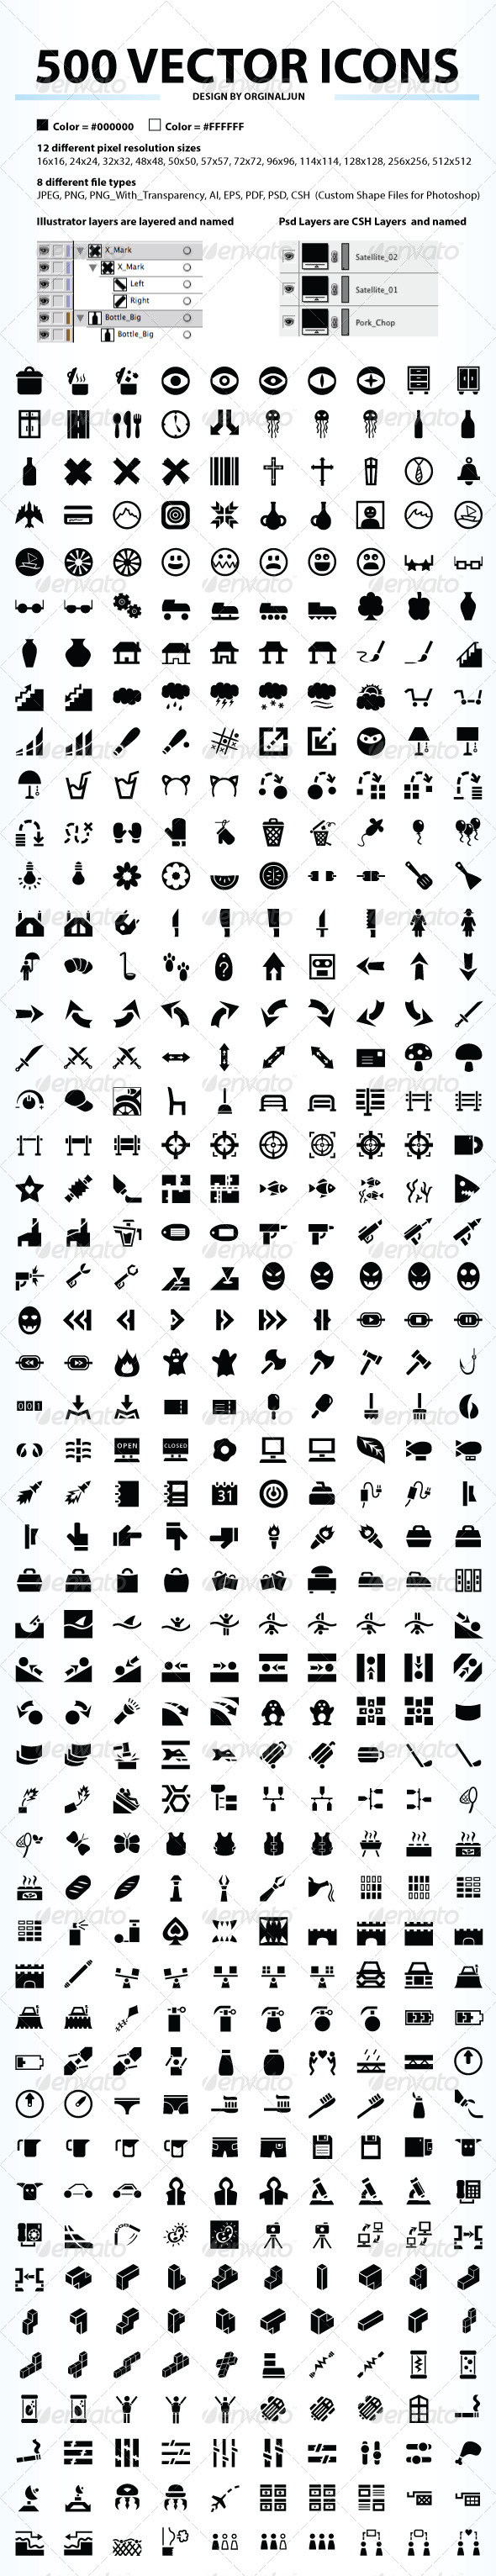 GraphicRiver 500 Vector Icons 5129804